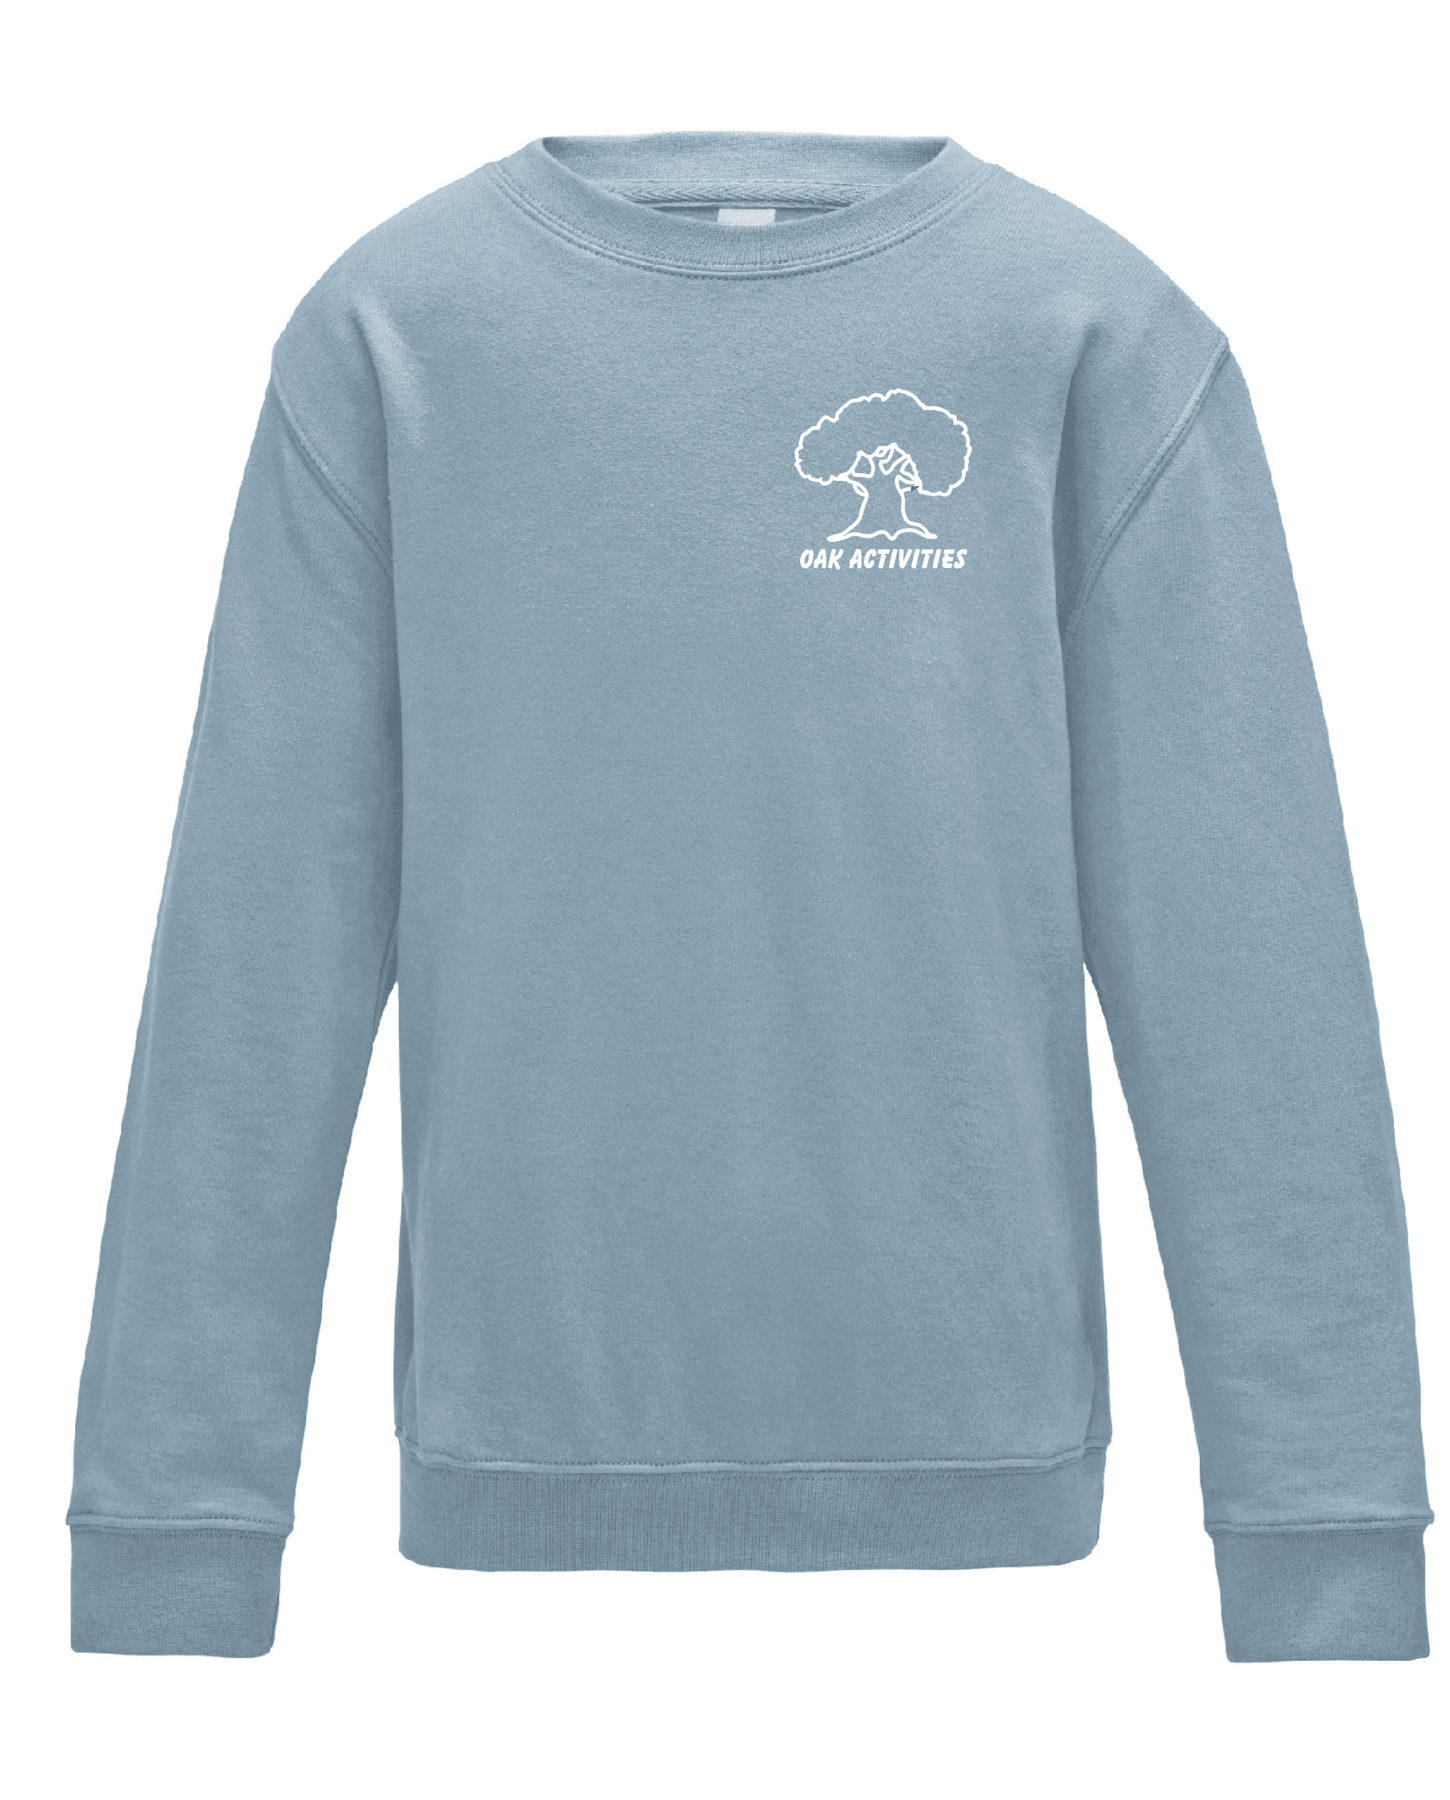 Oak Activities – Kids Sweatshirt (Sky)